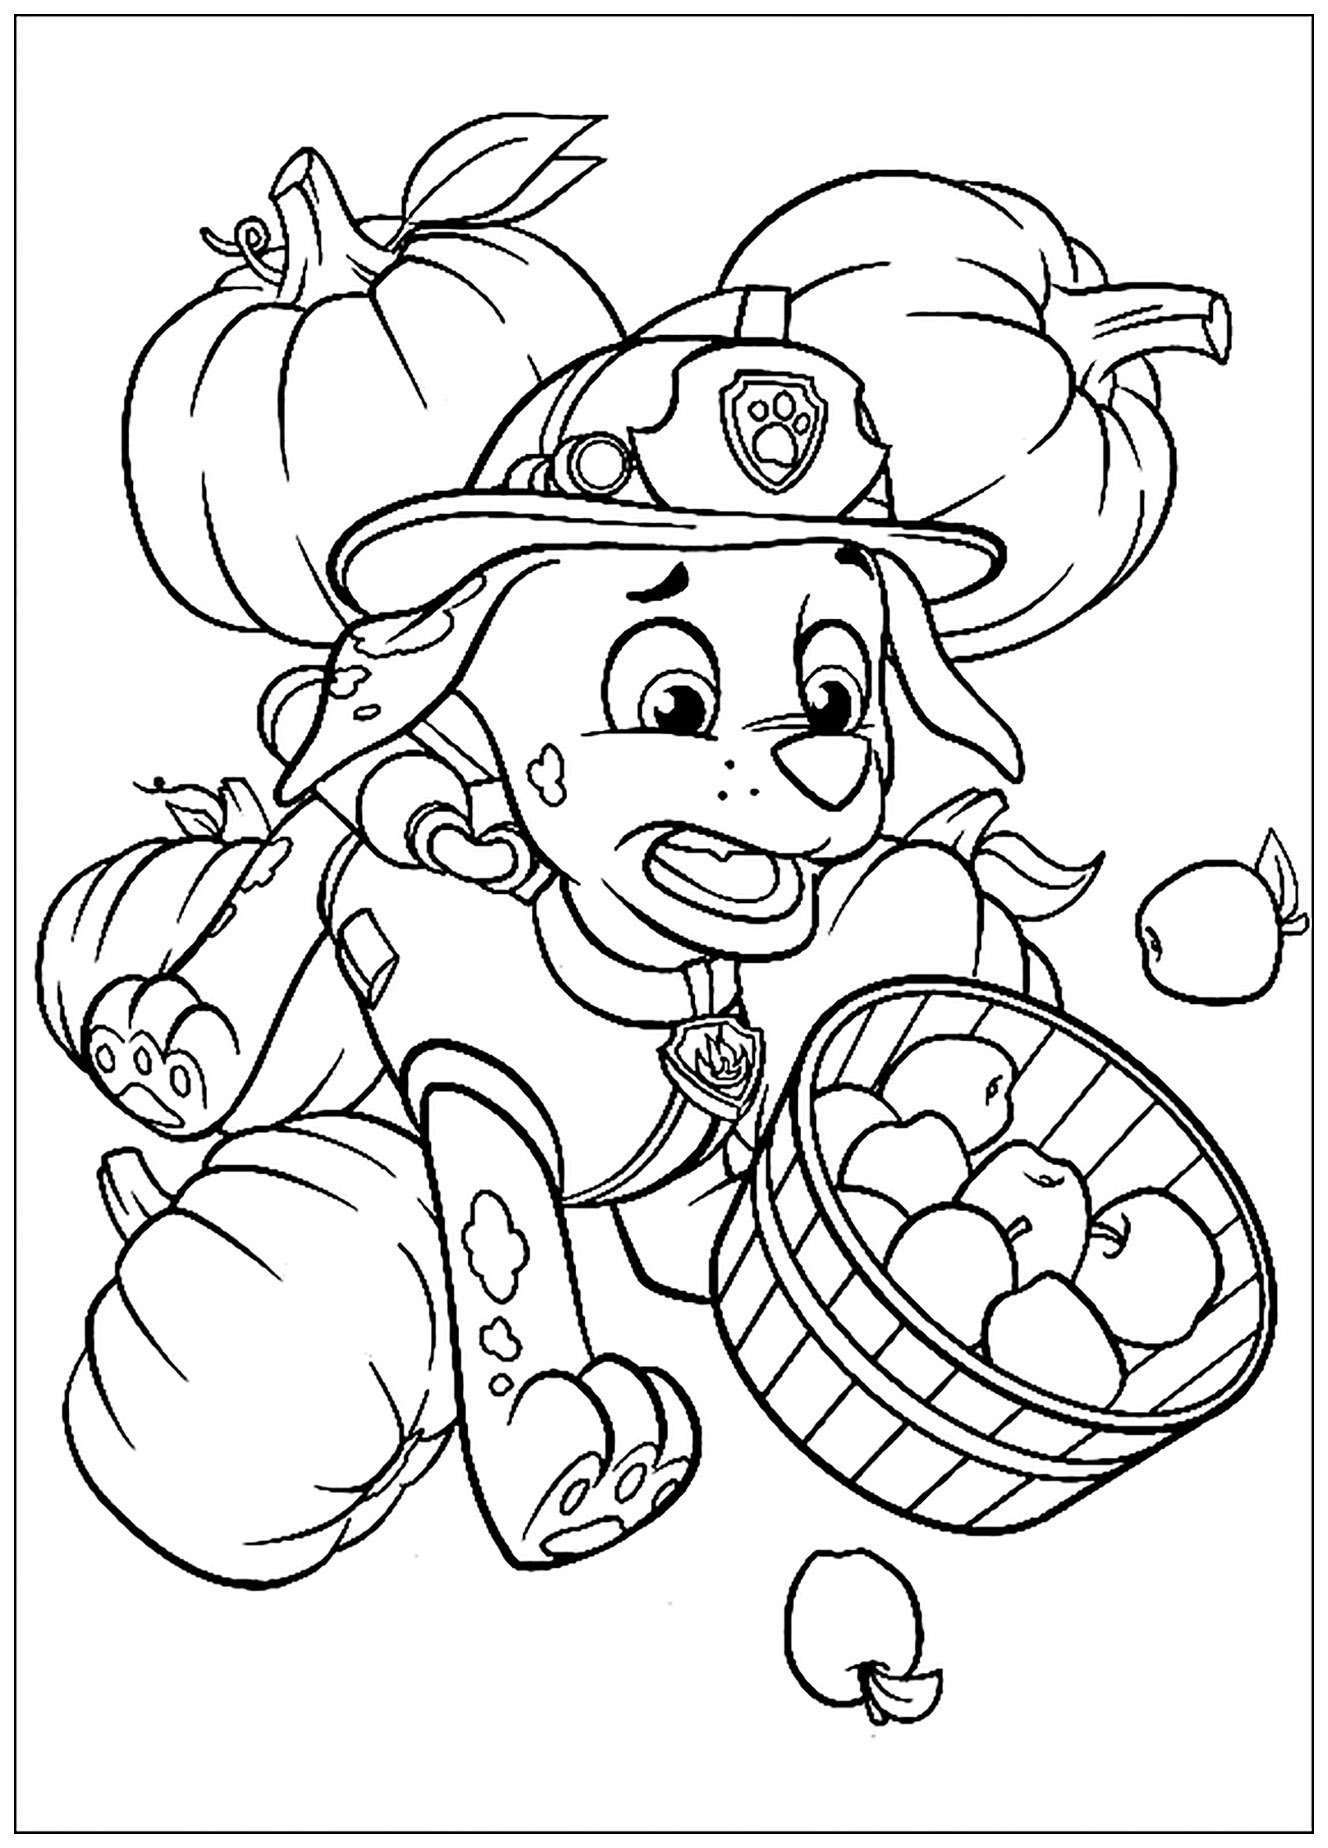 Paw patrol to print for free - Paw Patrol Kids Coloring Pages